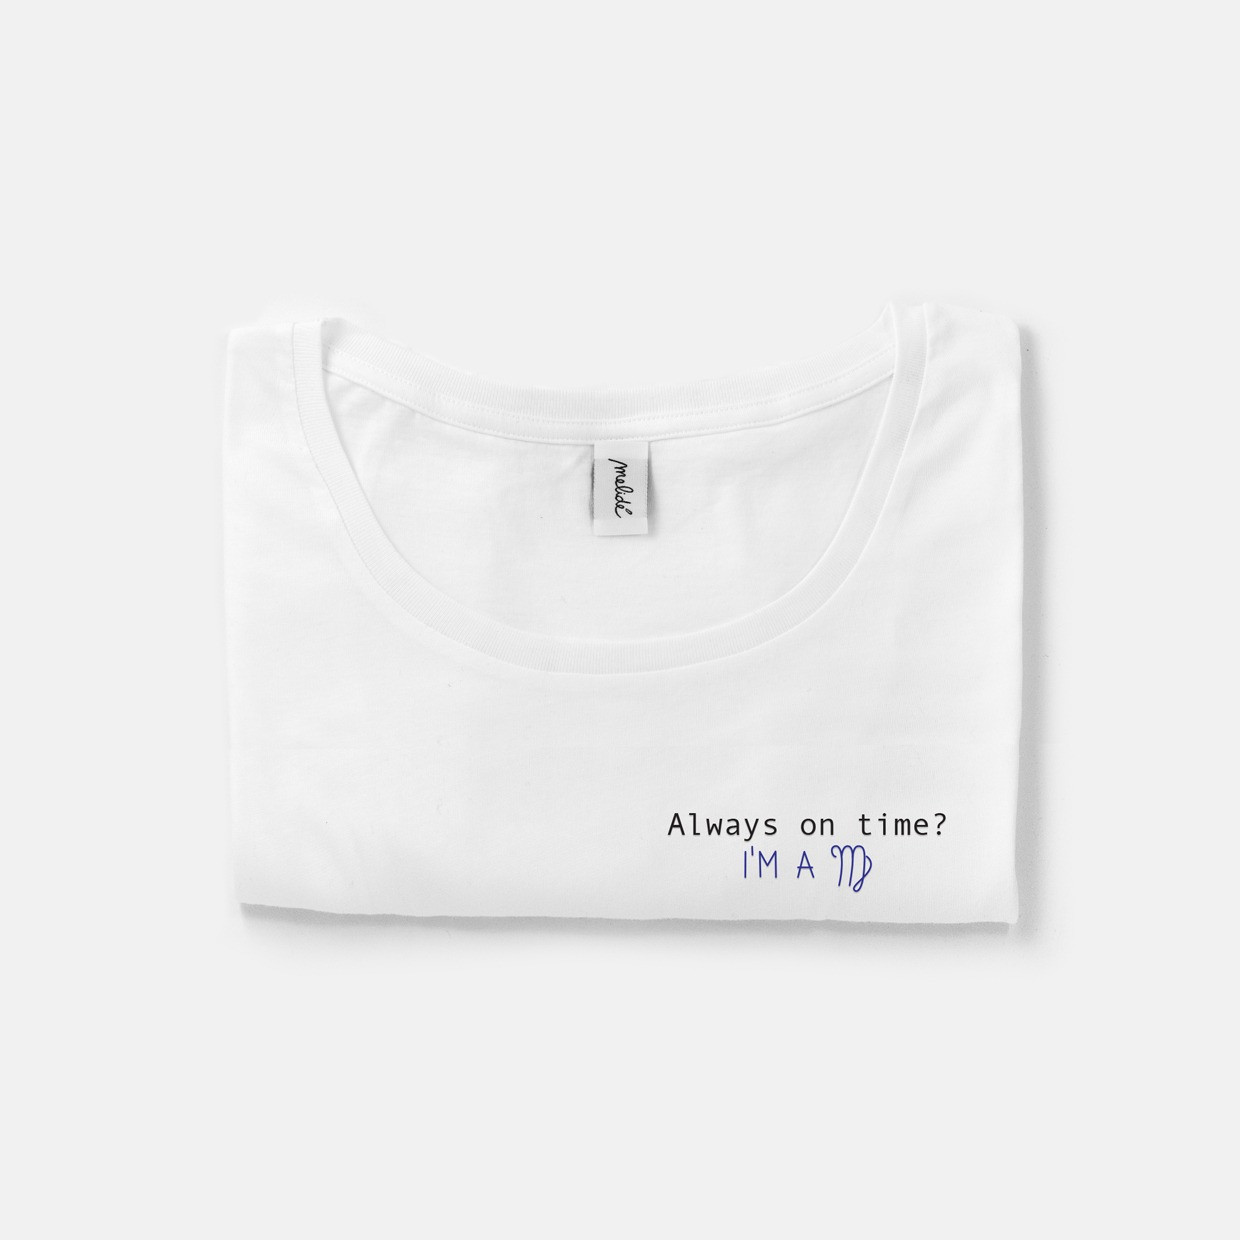 The ALWAYS ON TIME? VIRGO wide neck tee